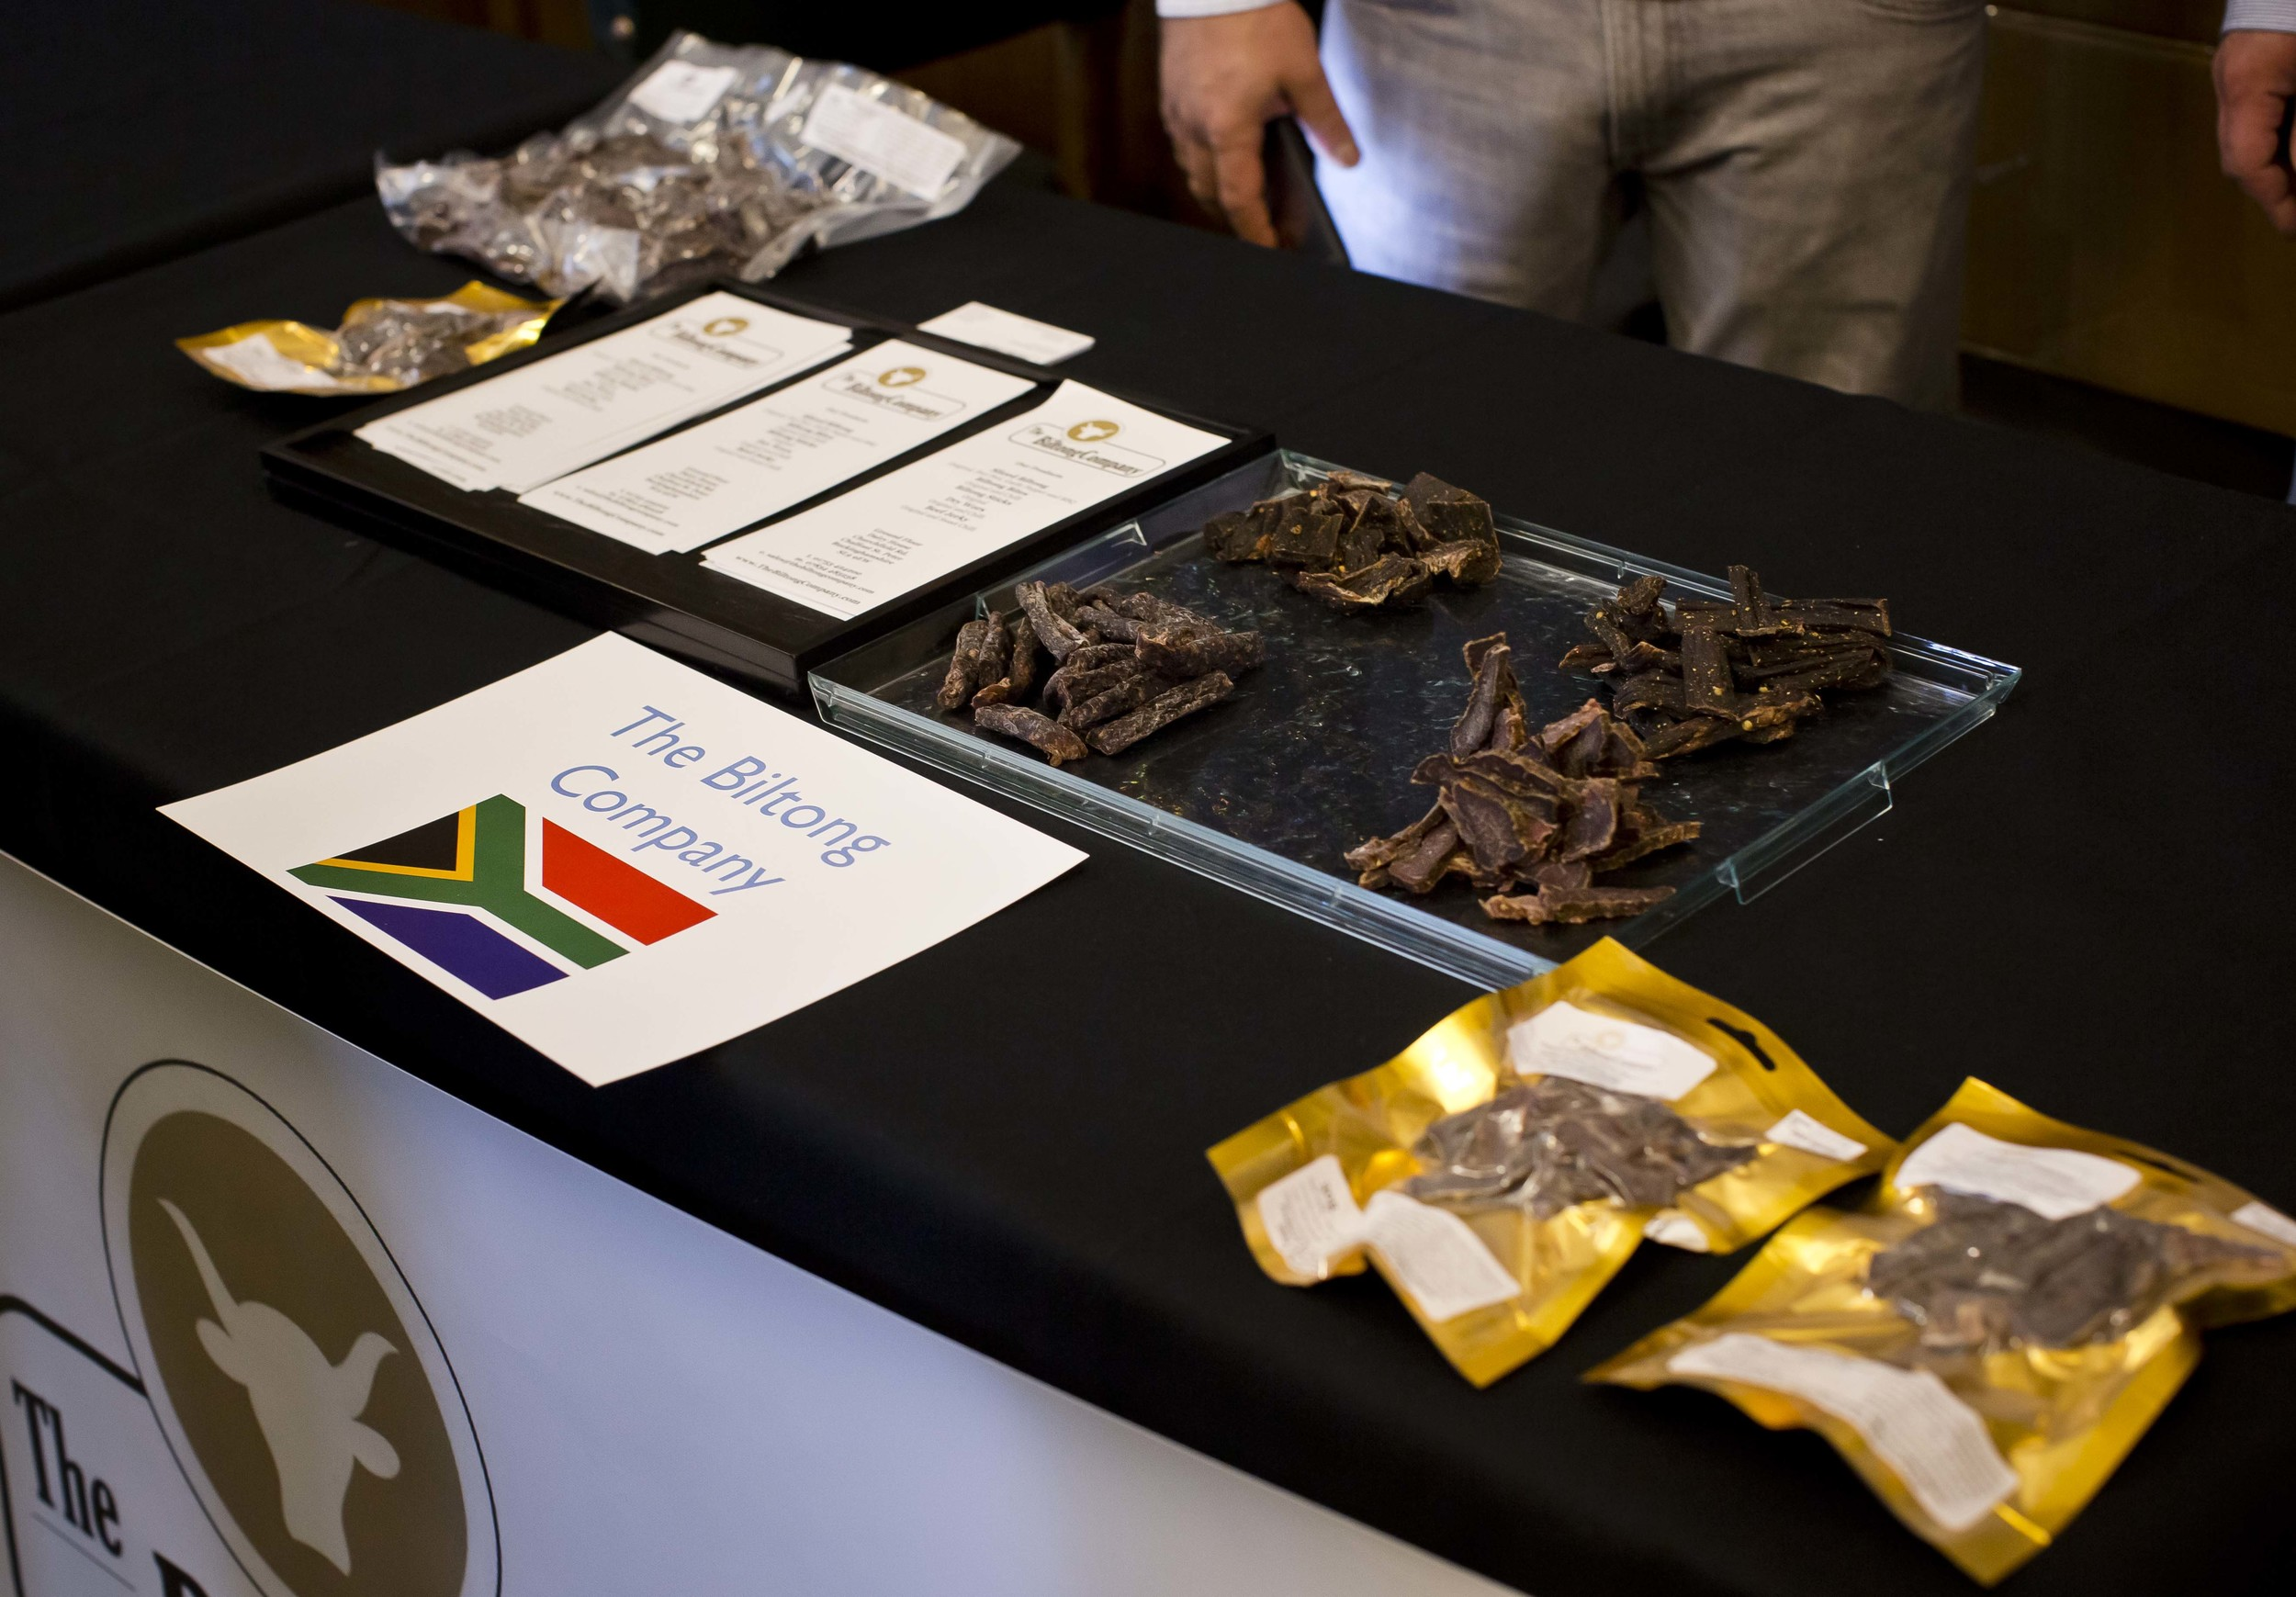 Commonwealth food event 2014-2438.jpg